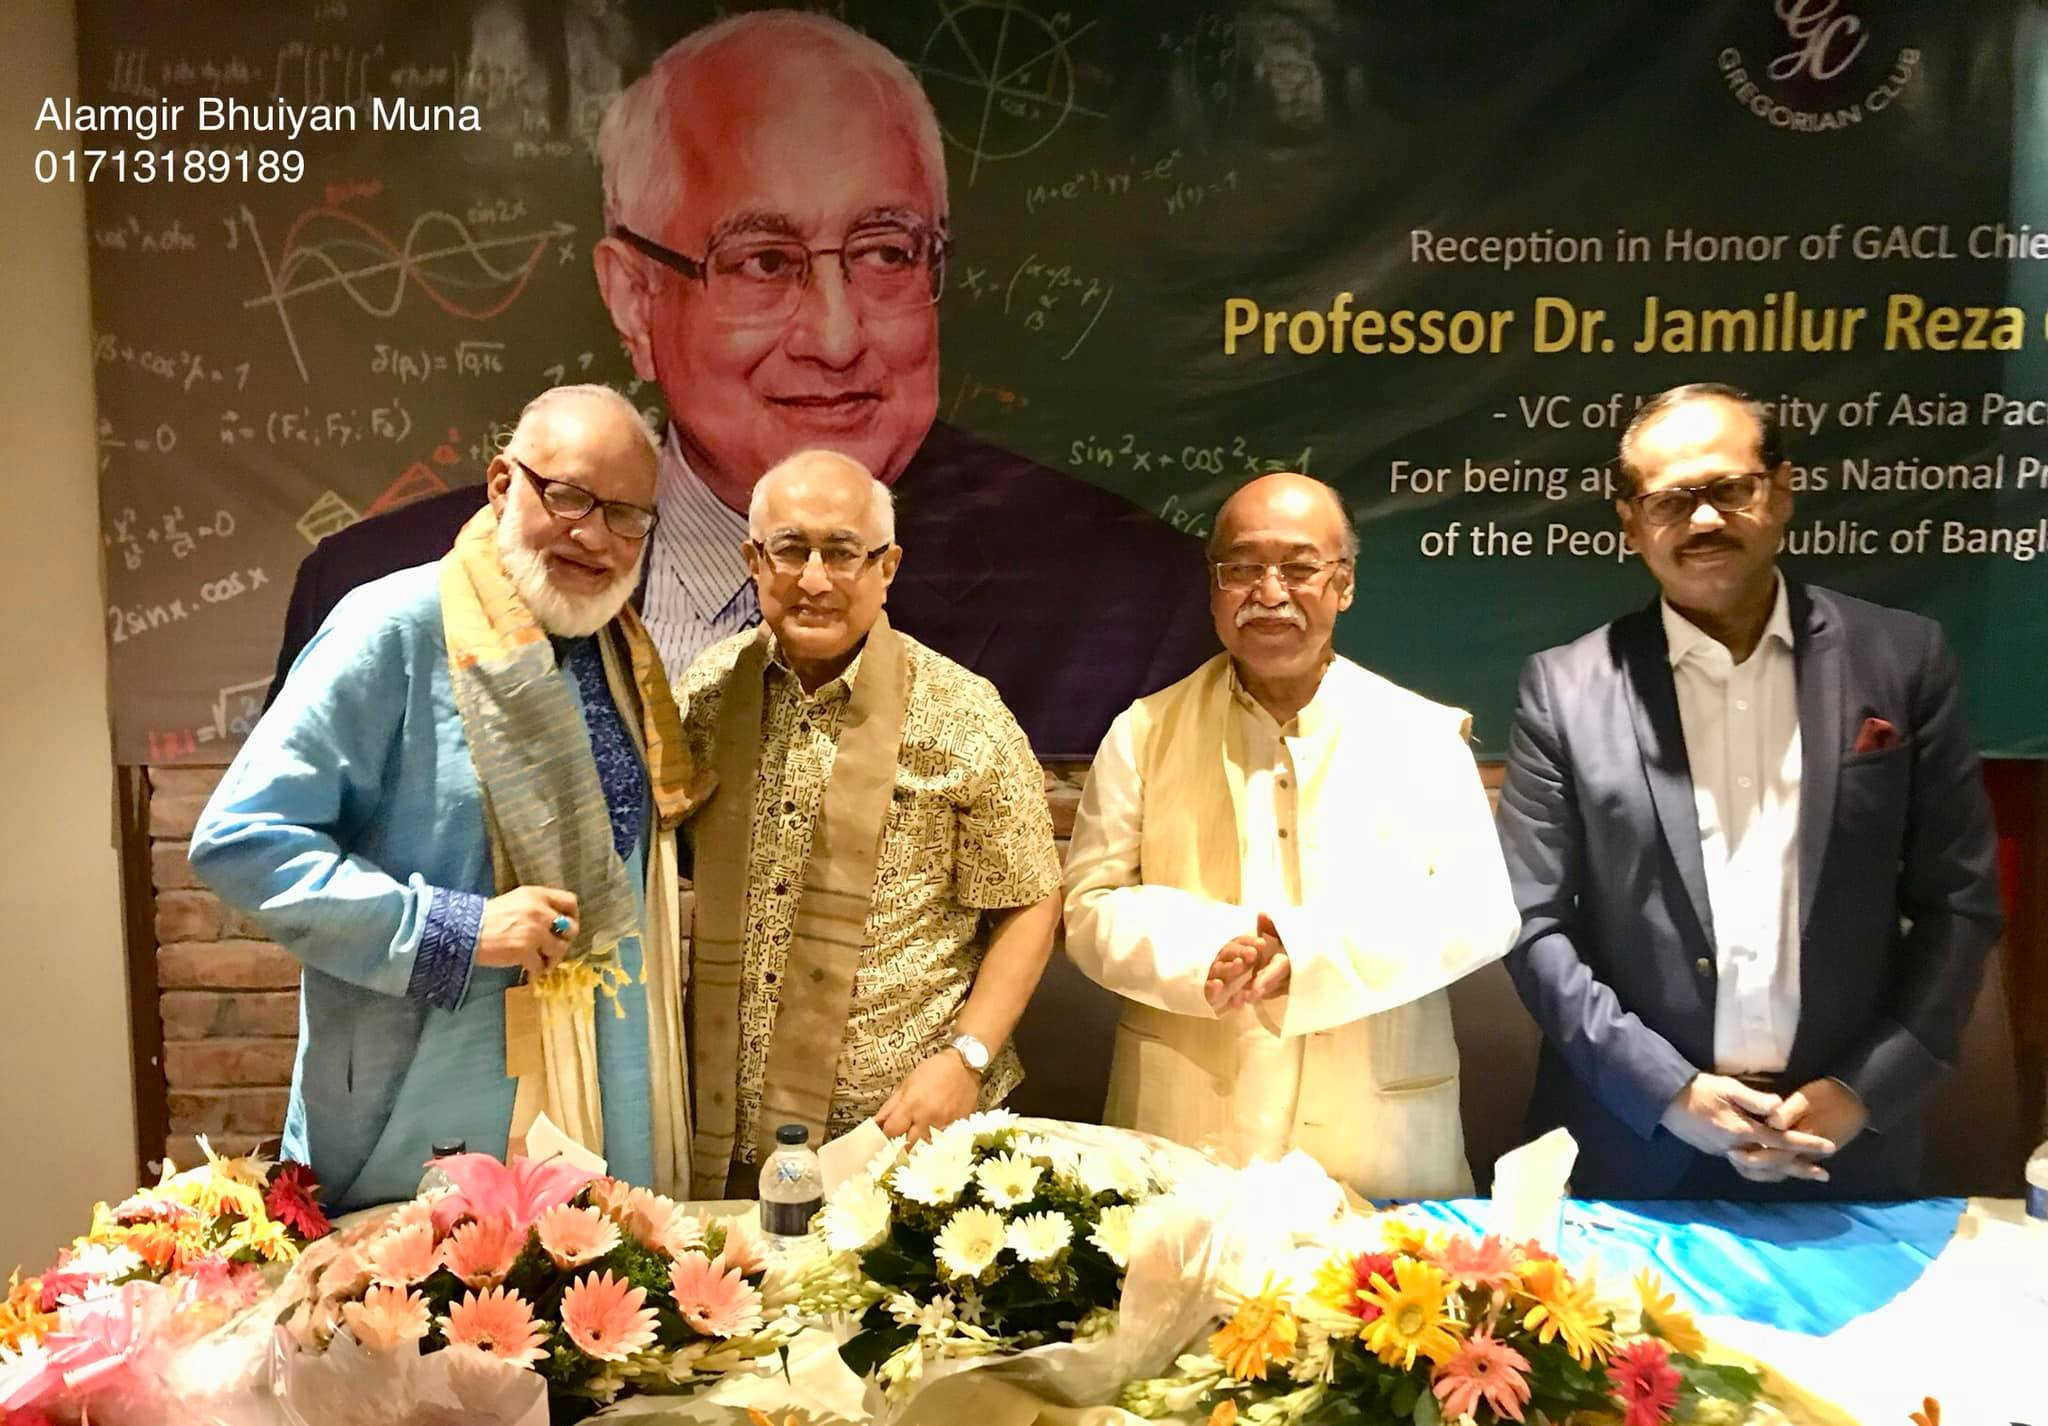 Jamilur Reza Choudhury (2nd from Left)